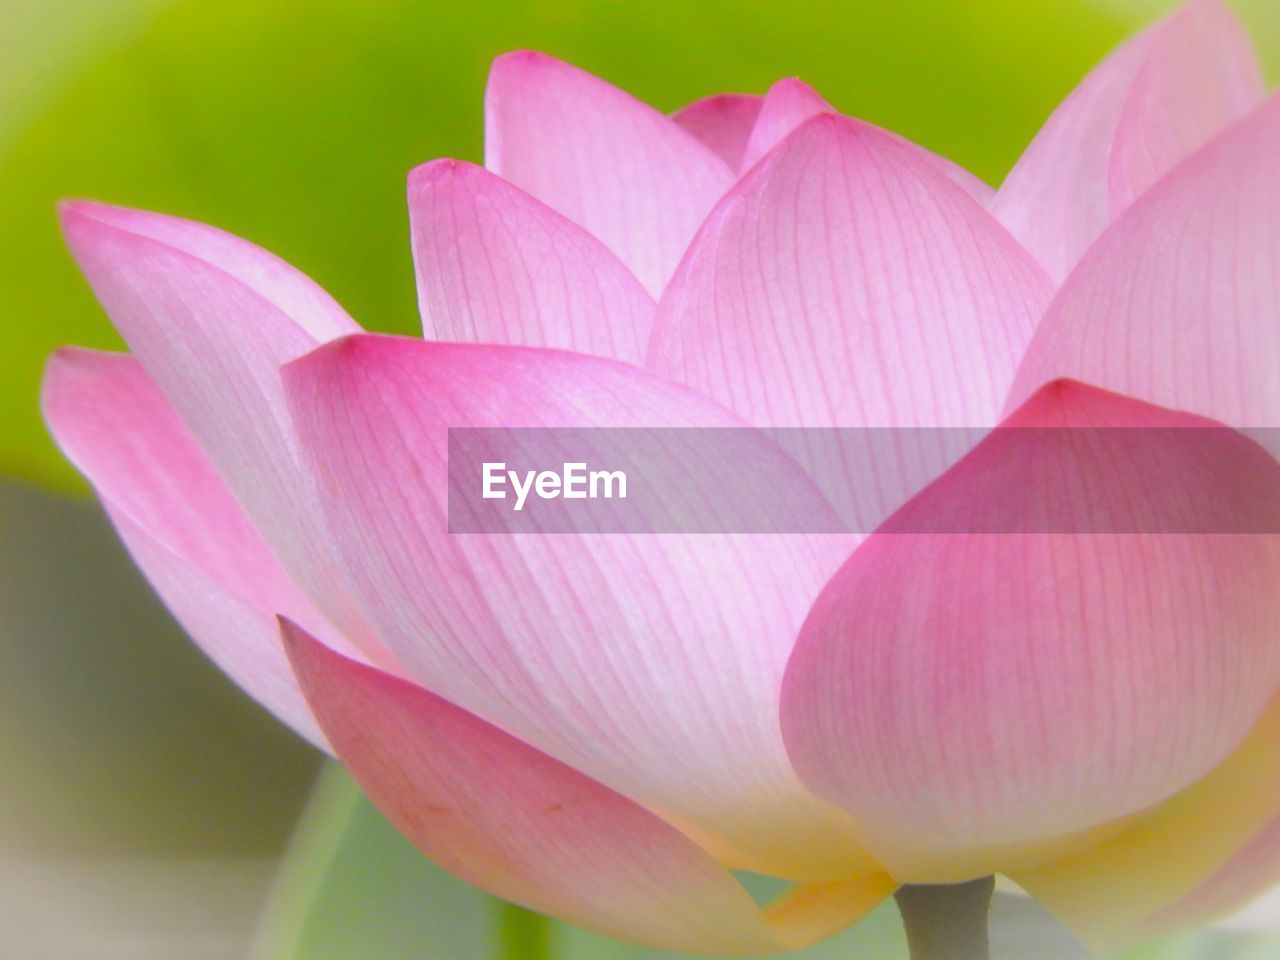 flowering plant, flower, beauty in nature, vulnerability, plant, petal, fragility, close-up, freshness, pink color, inflorescence, flower head, growth, nature, no people, water lily, lotus water lily, day, focus on foreground, outdoors, softness